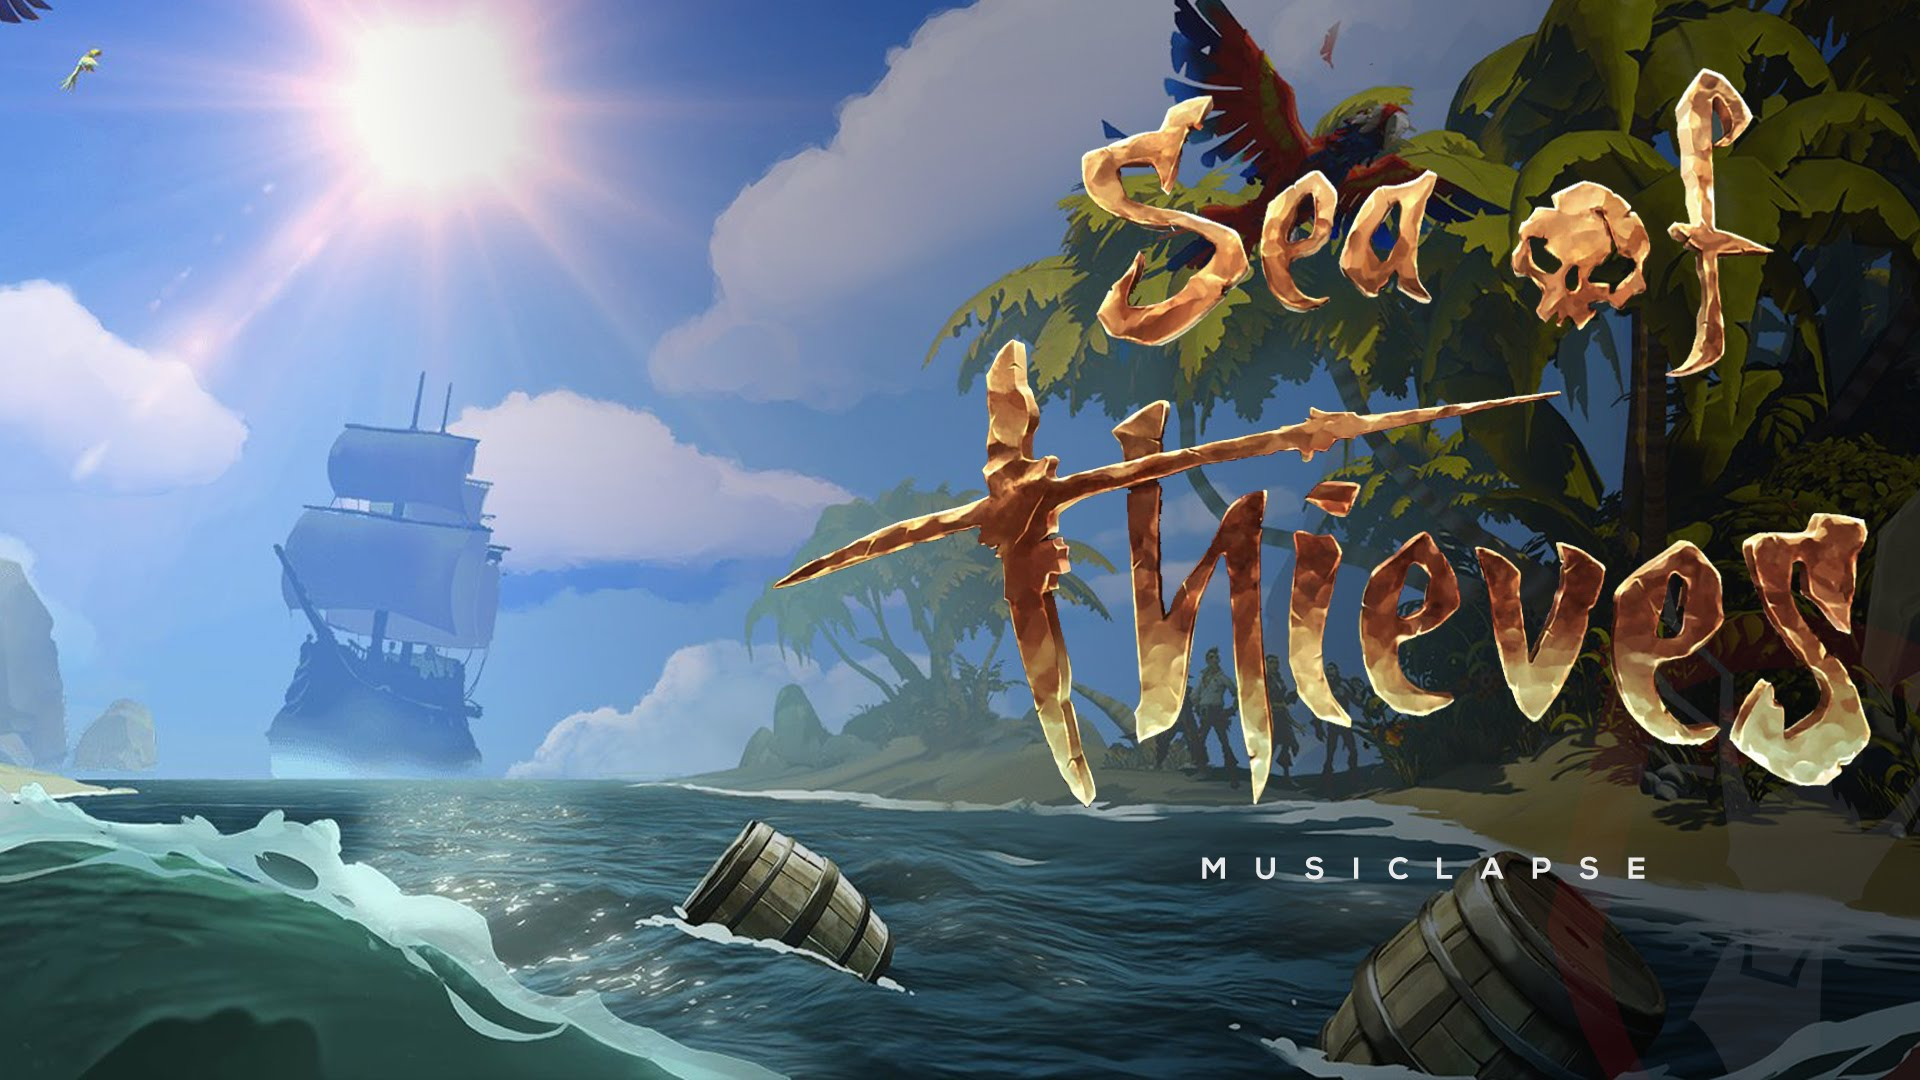 Sea of Thieves Meta-Review - Play With Your Friends!